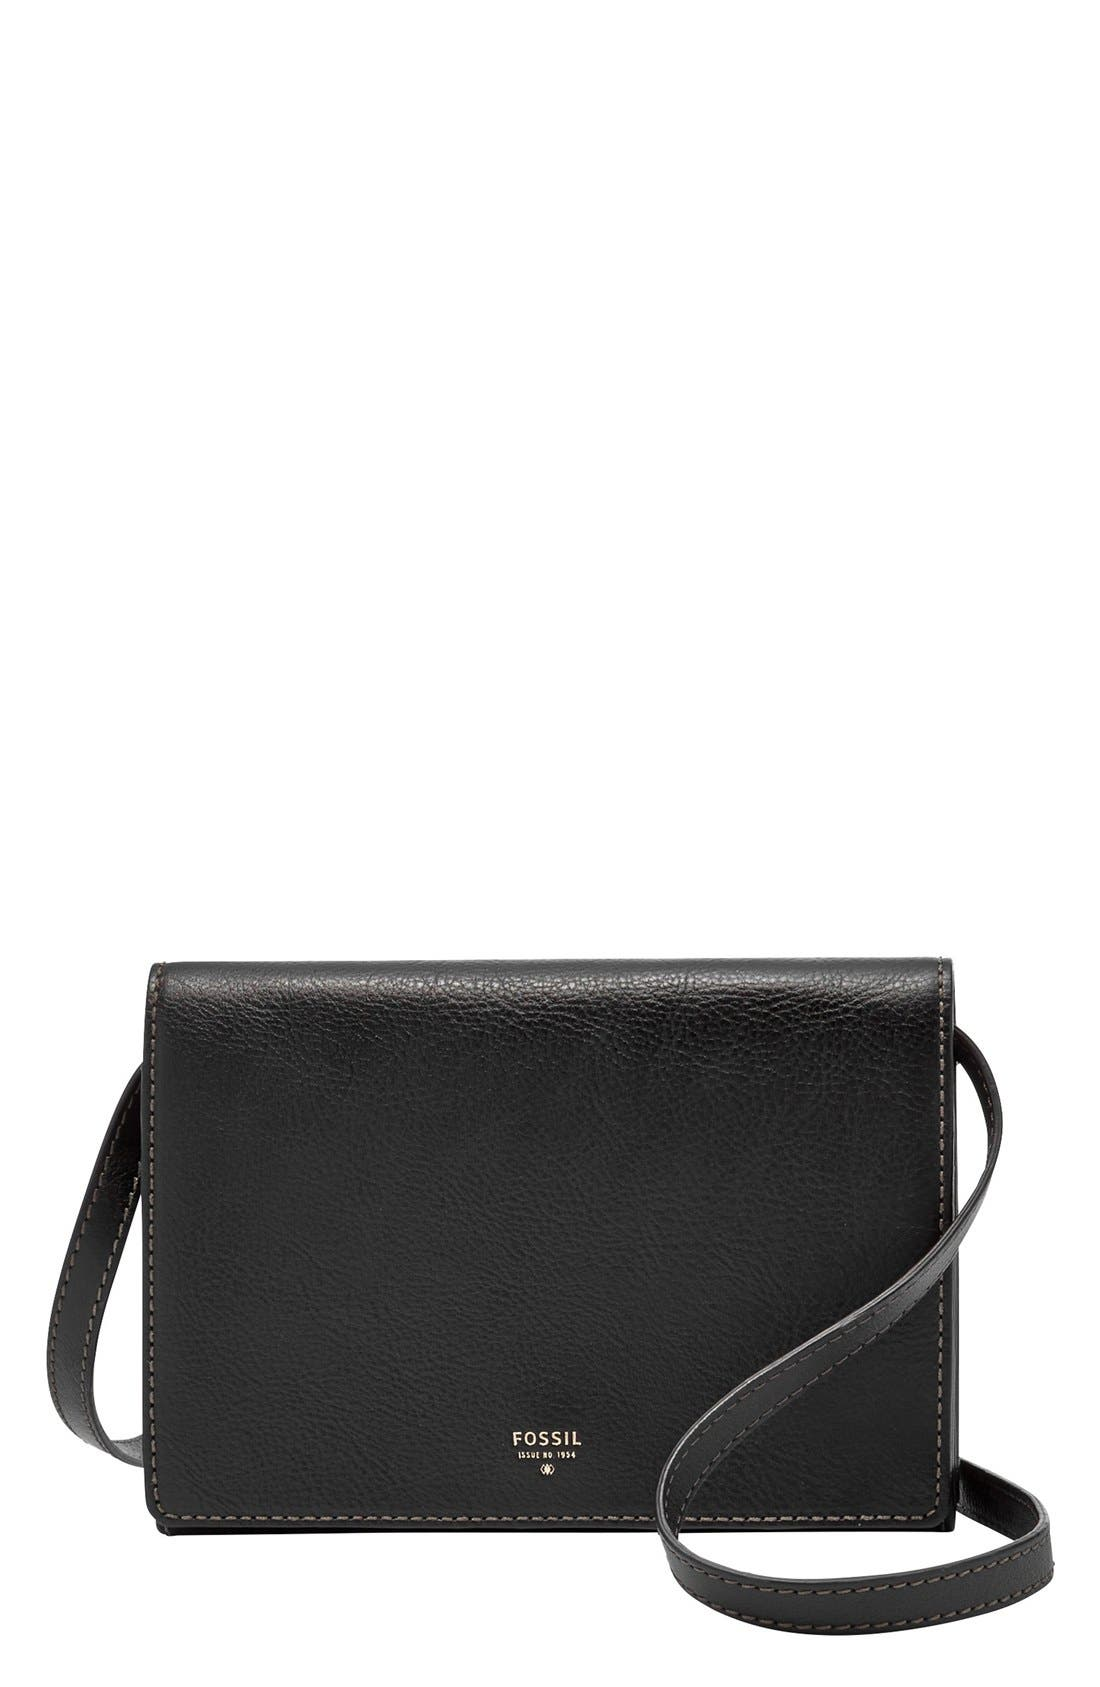 Alternate Image 1 Selected - Fossil 'Mini Sydney' Convertible Crossbody Bag